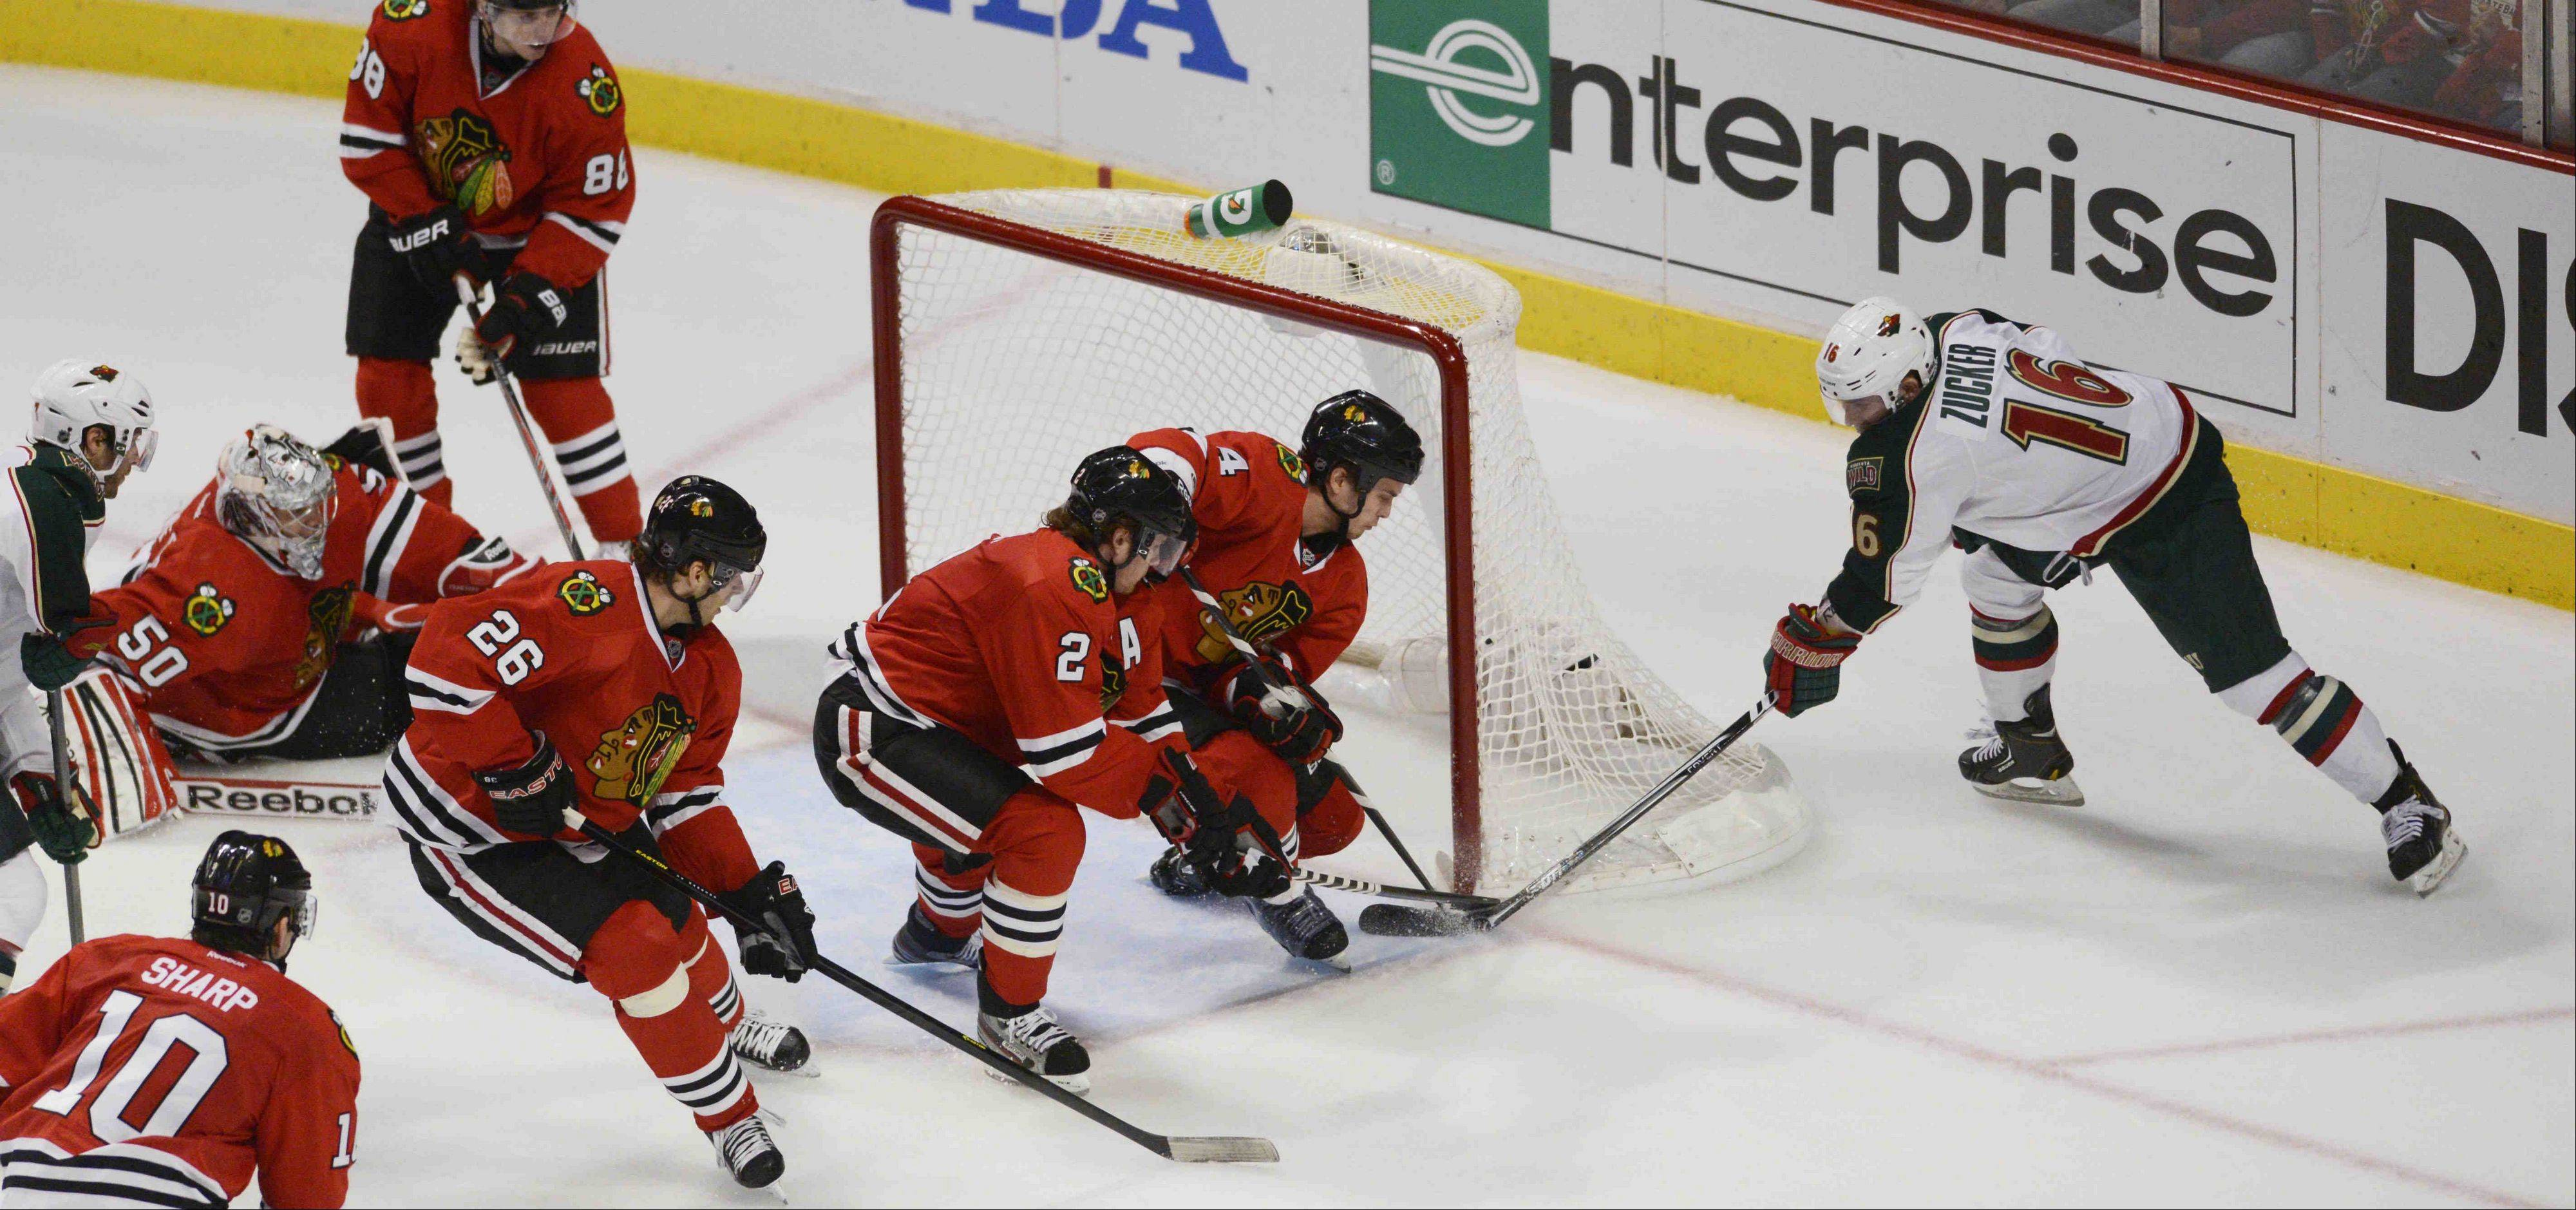 Chicago Blackhawks defenseman Niklas Hjalmarsson and defenseman Duncan Keith defend the goal against Minnesota left wing Jason Zucker as goalie Corey Crawford scrambled back into position Tuesday in Game 1 of the Western Conference first-round playoff series.